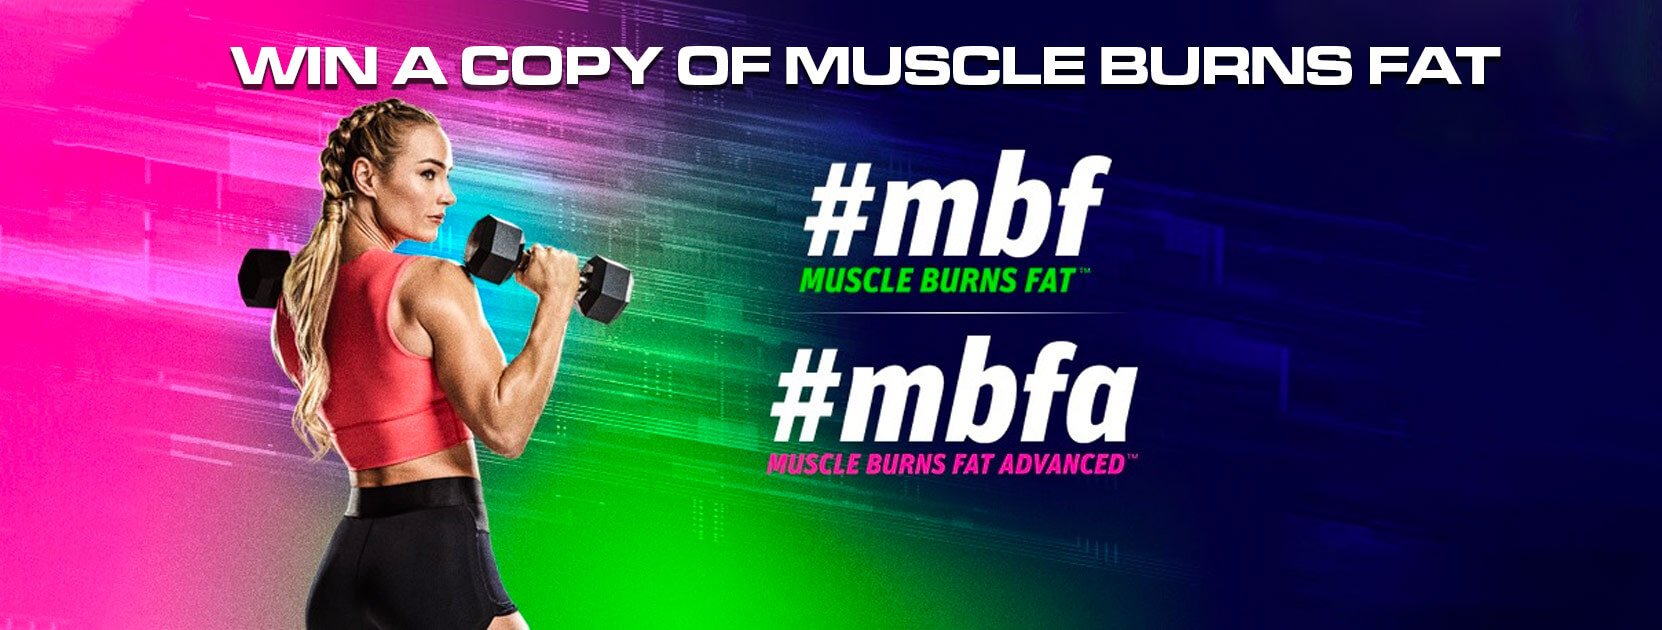 Win a copy of Muscle Burns Fat